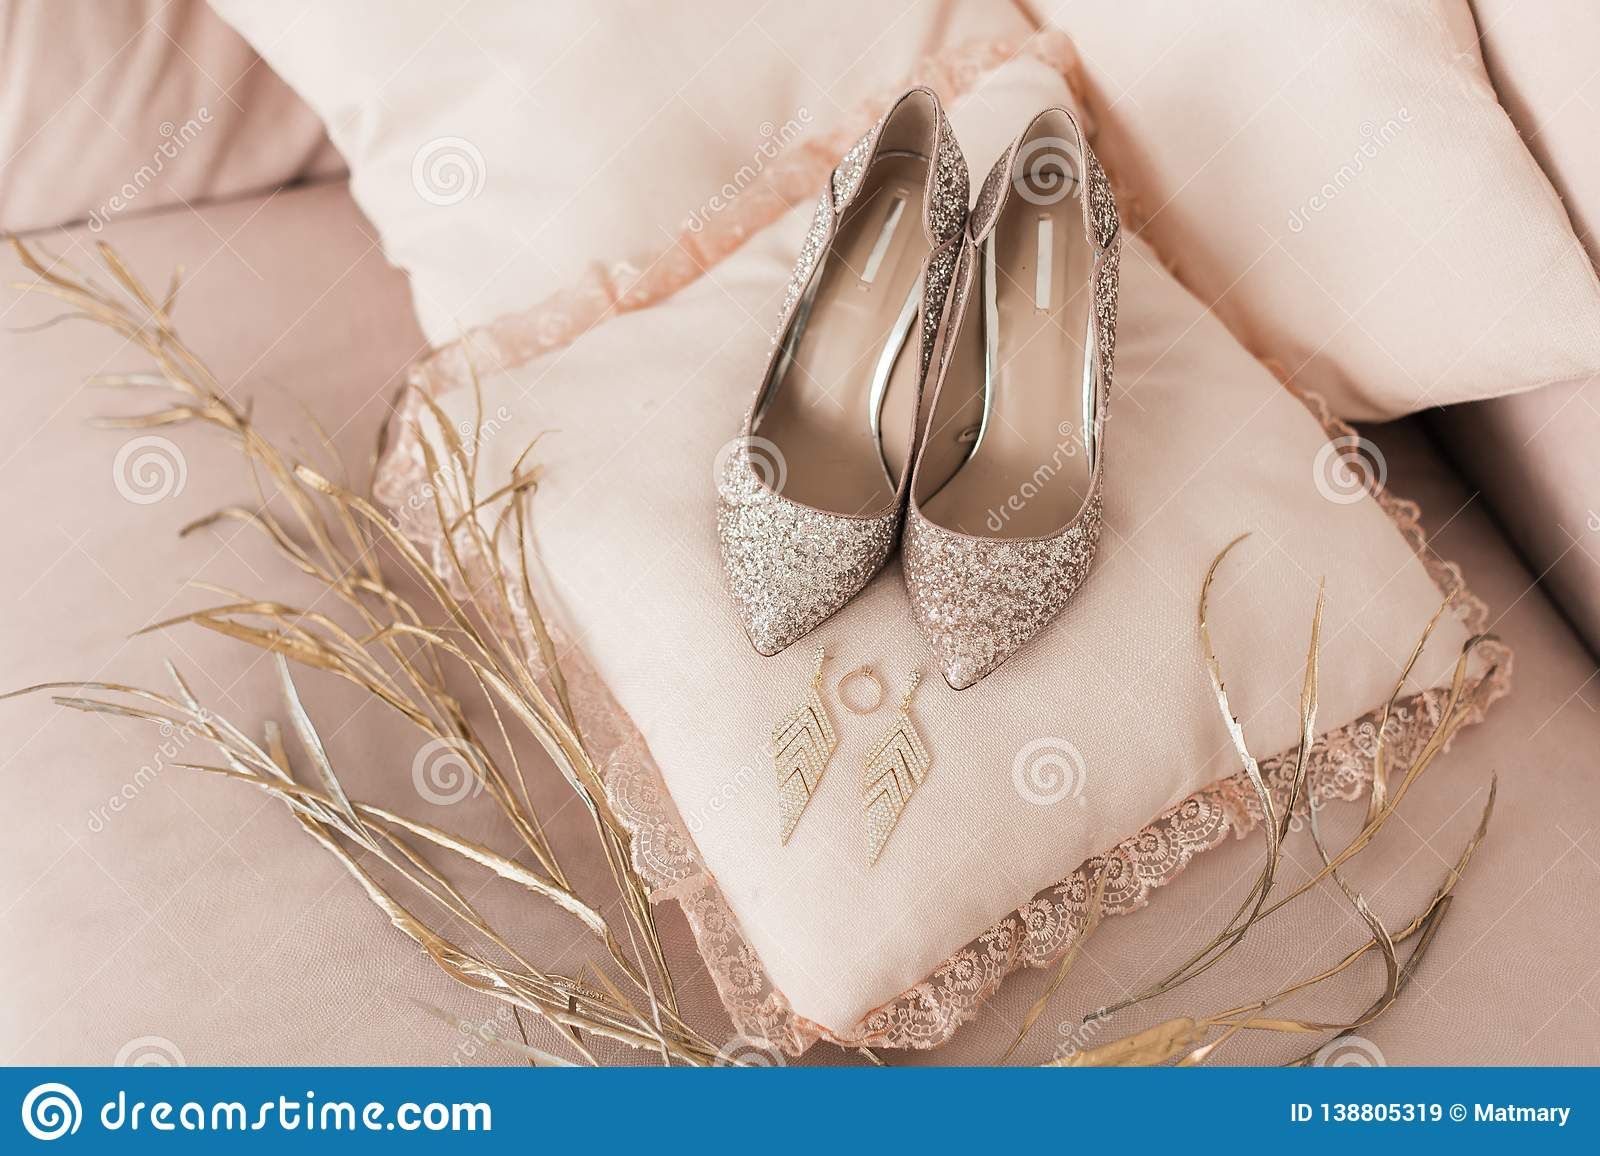 82870015b677 Blush pink bridal shoes and accenting jewelry and perfume with gold floral  decoration. Pink background. Close up and top view.